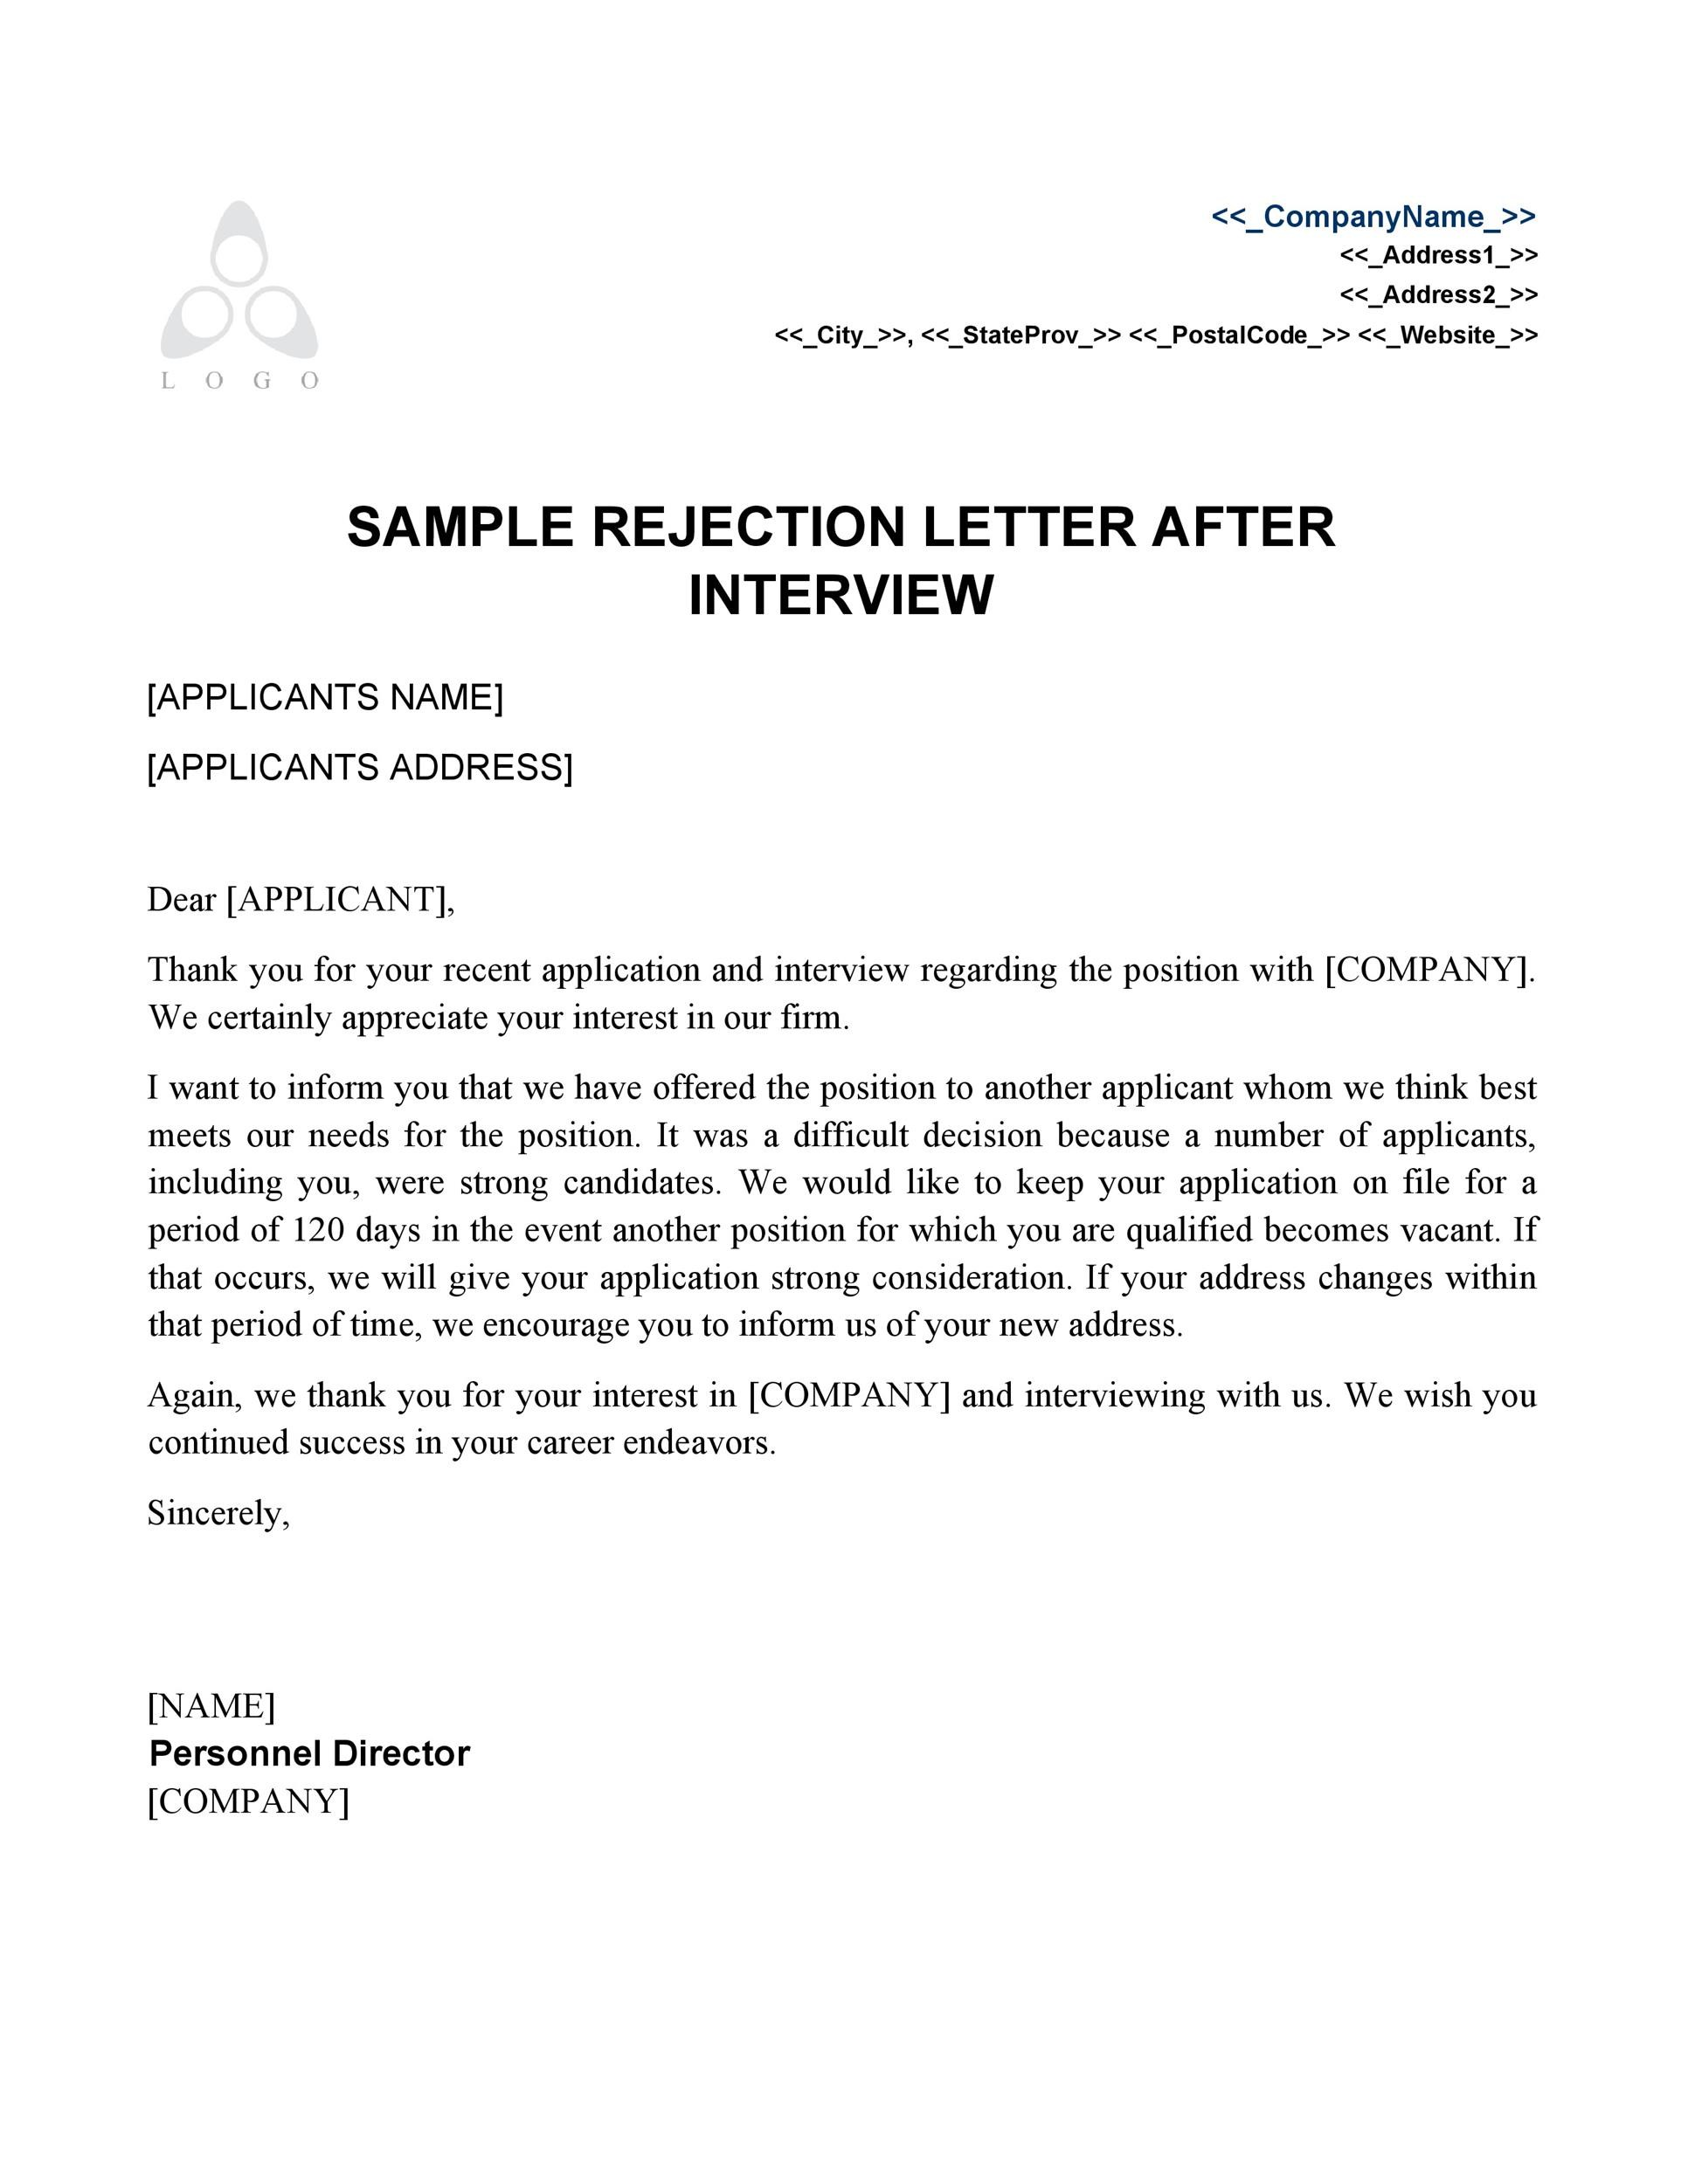 Rejection Letter Templates